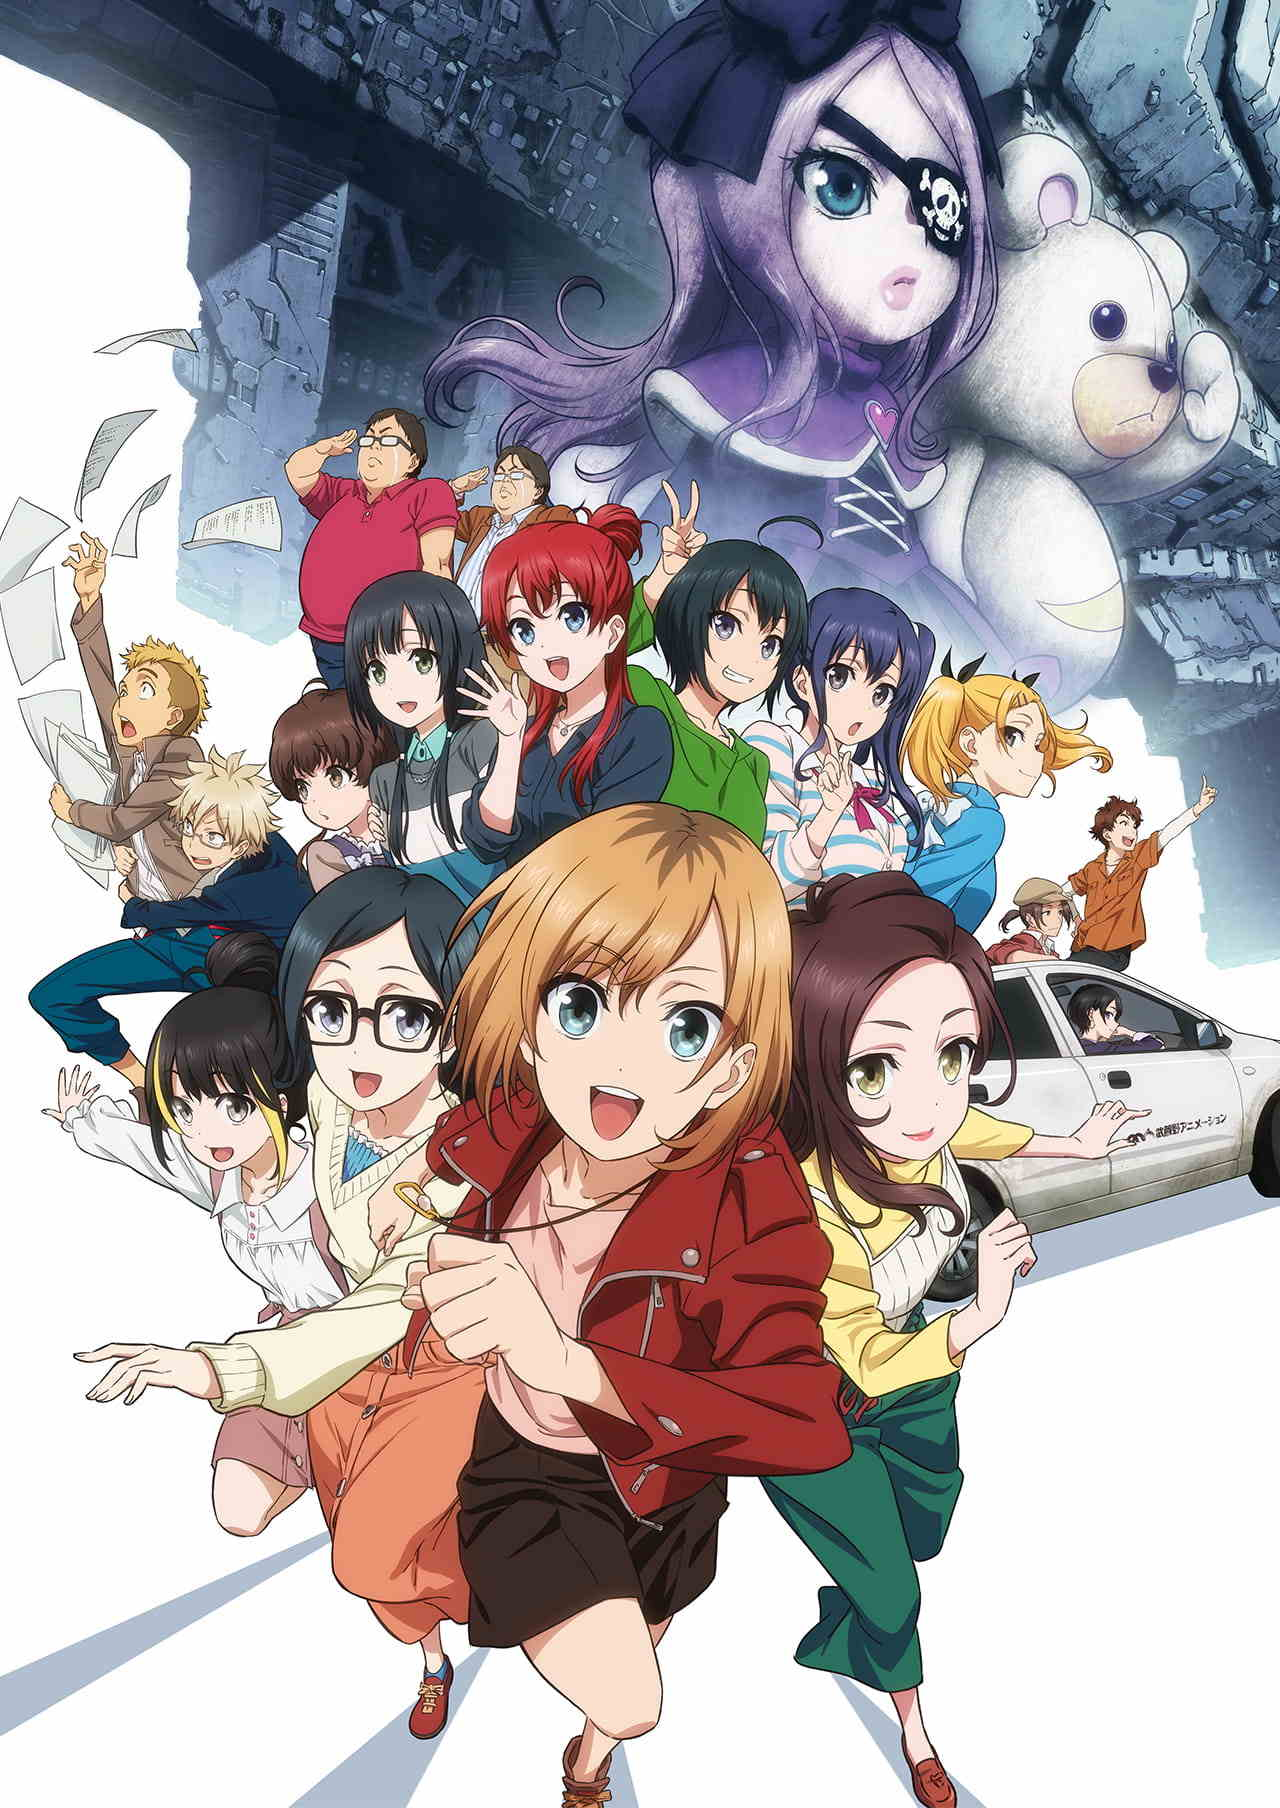 New Anime Movies 2021 14 - shirobako